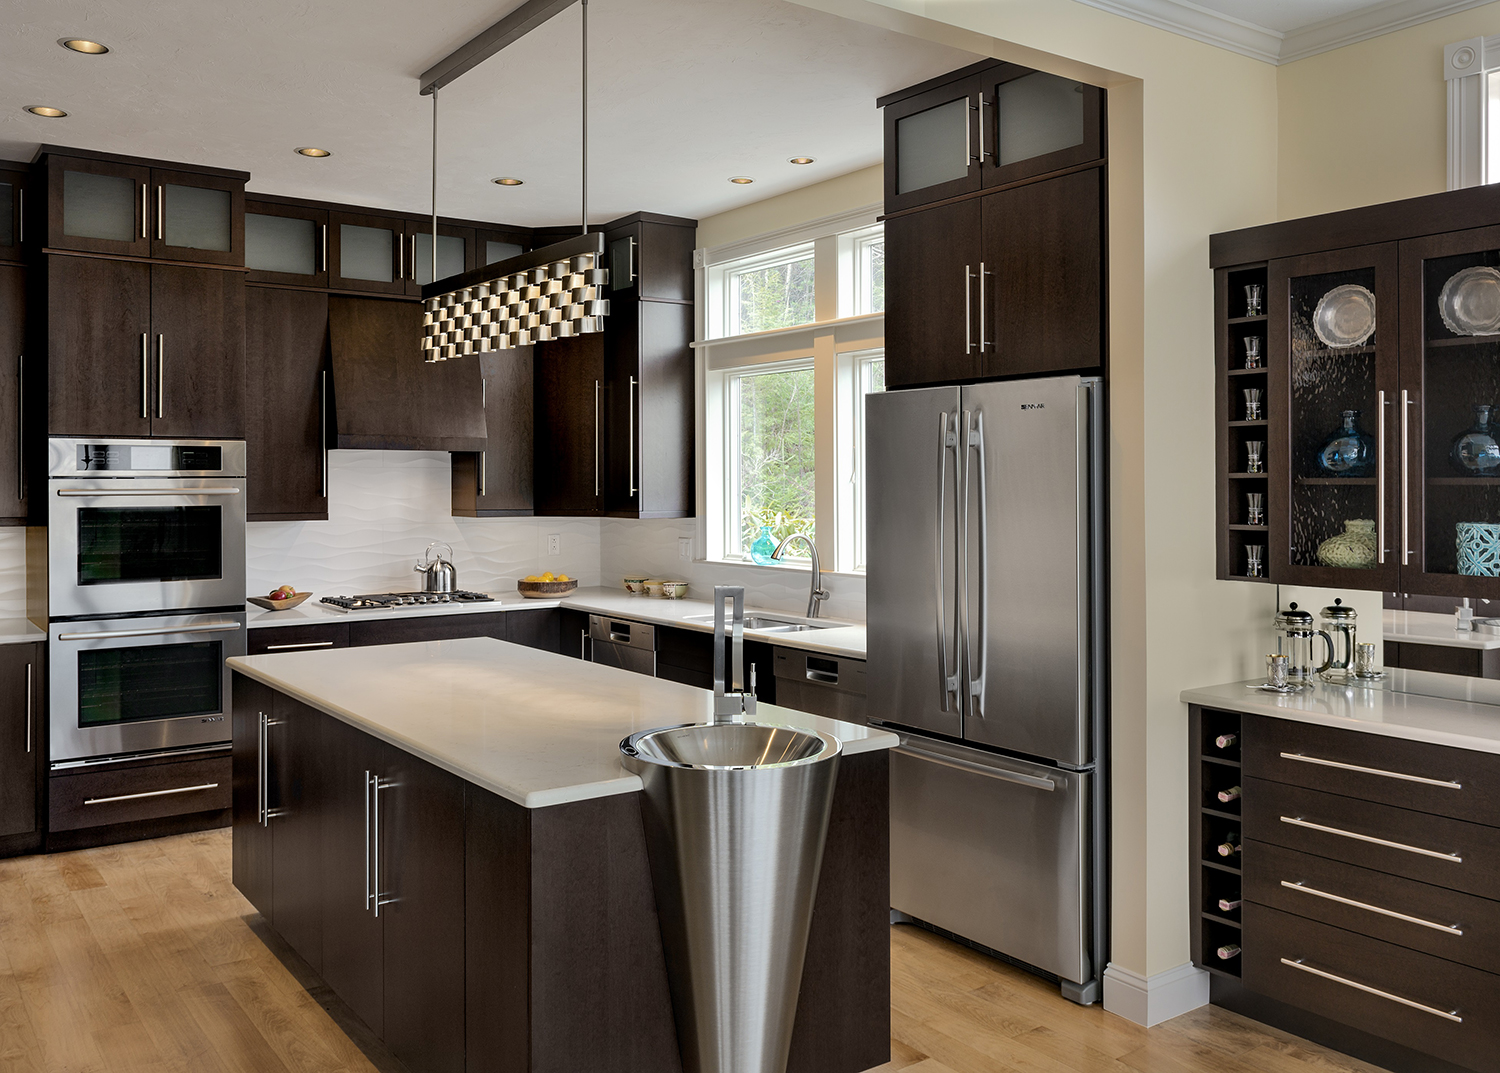 kitchen design the 2017 winners are cool trainers from c.  randolph trainer equipment and KWCOSAH